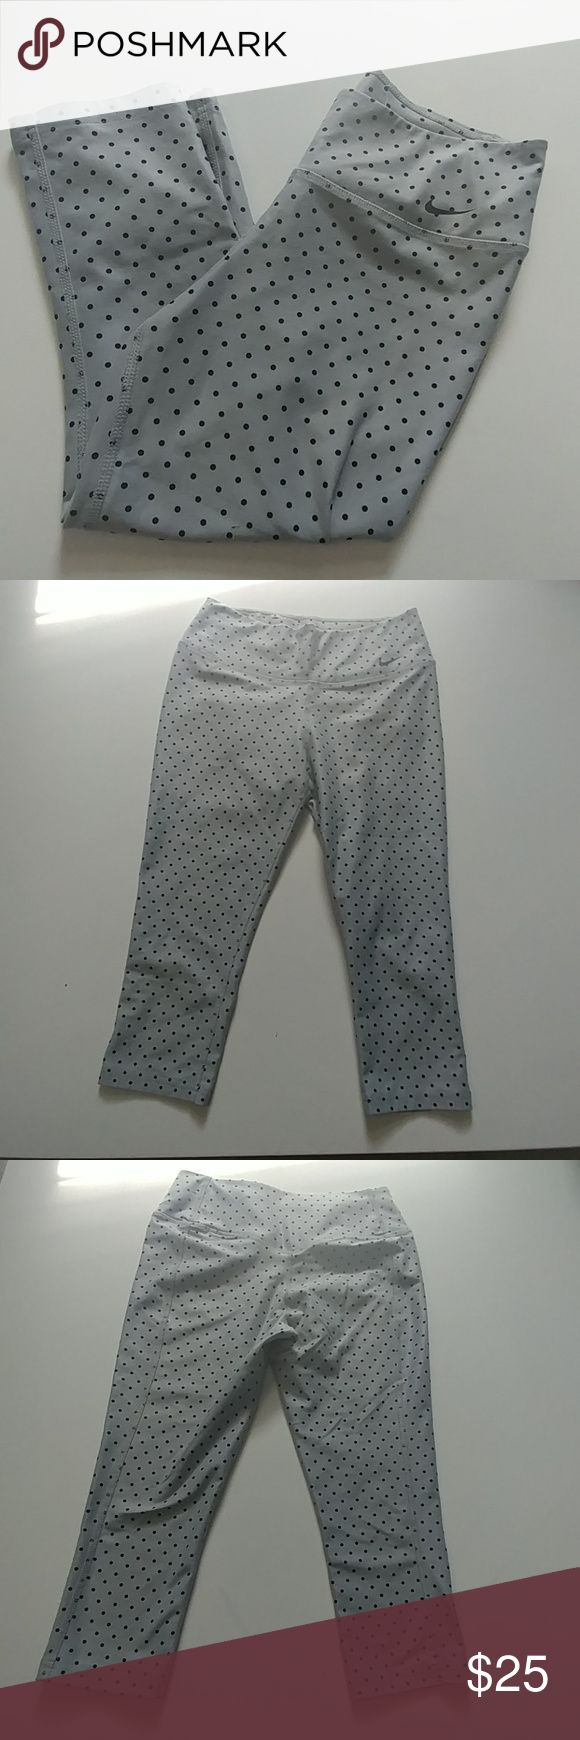 """Nike Dri Fit Capri Tights sz Small Gray Capri w black polka dots running tights from a a smoke and pet free home No damage flaws or defects Pocket inside waistband Ten less plastic bottles technology 88% recycled polyester/ 12% spandex sz small Approx Measurements  Waist 12.5"""" Rise 8.5"""" Inseam 17"""" Nike Pants Leggings"""